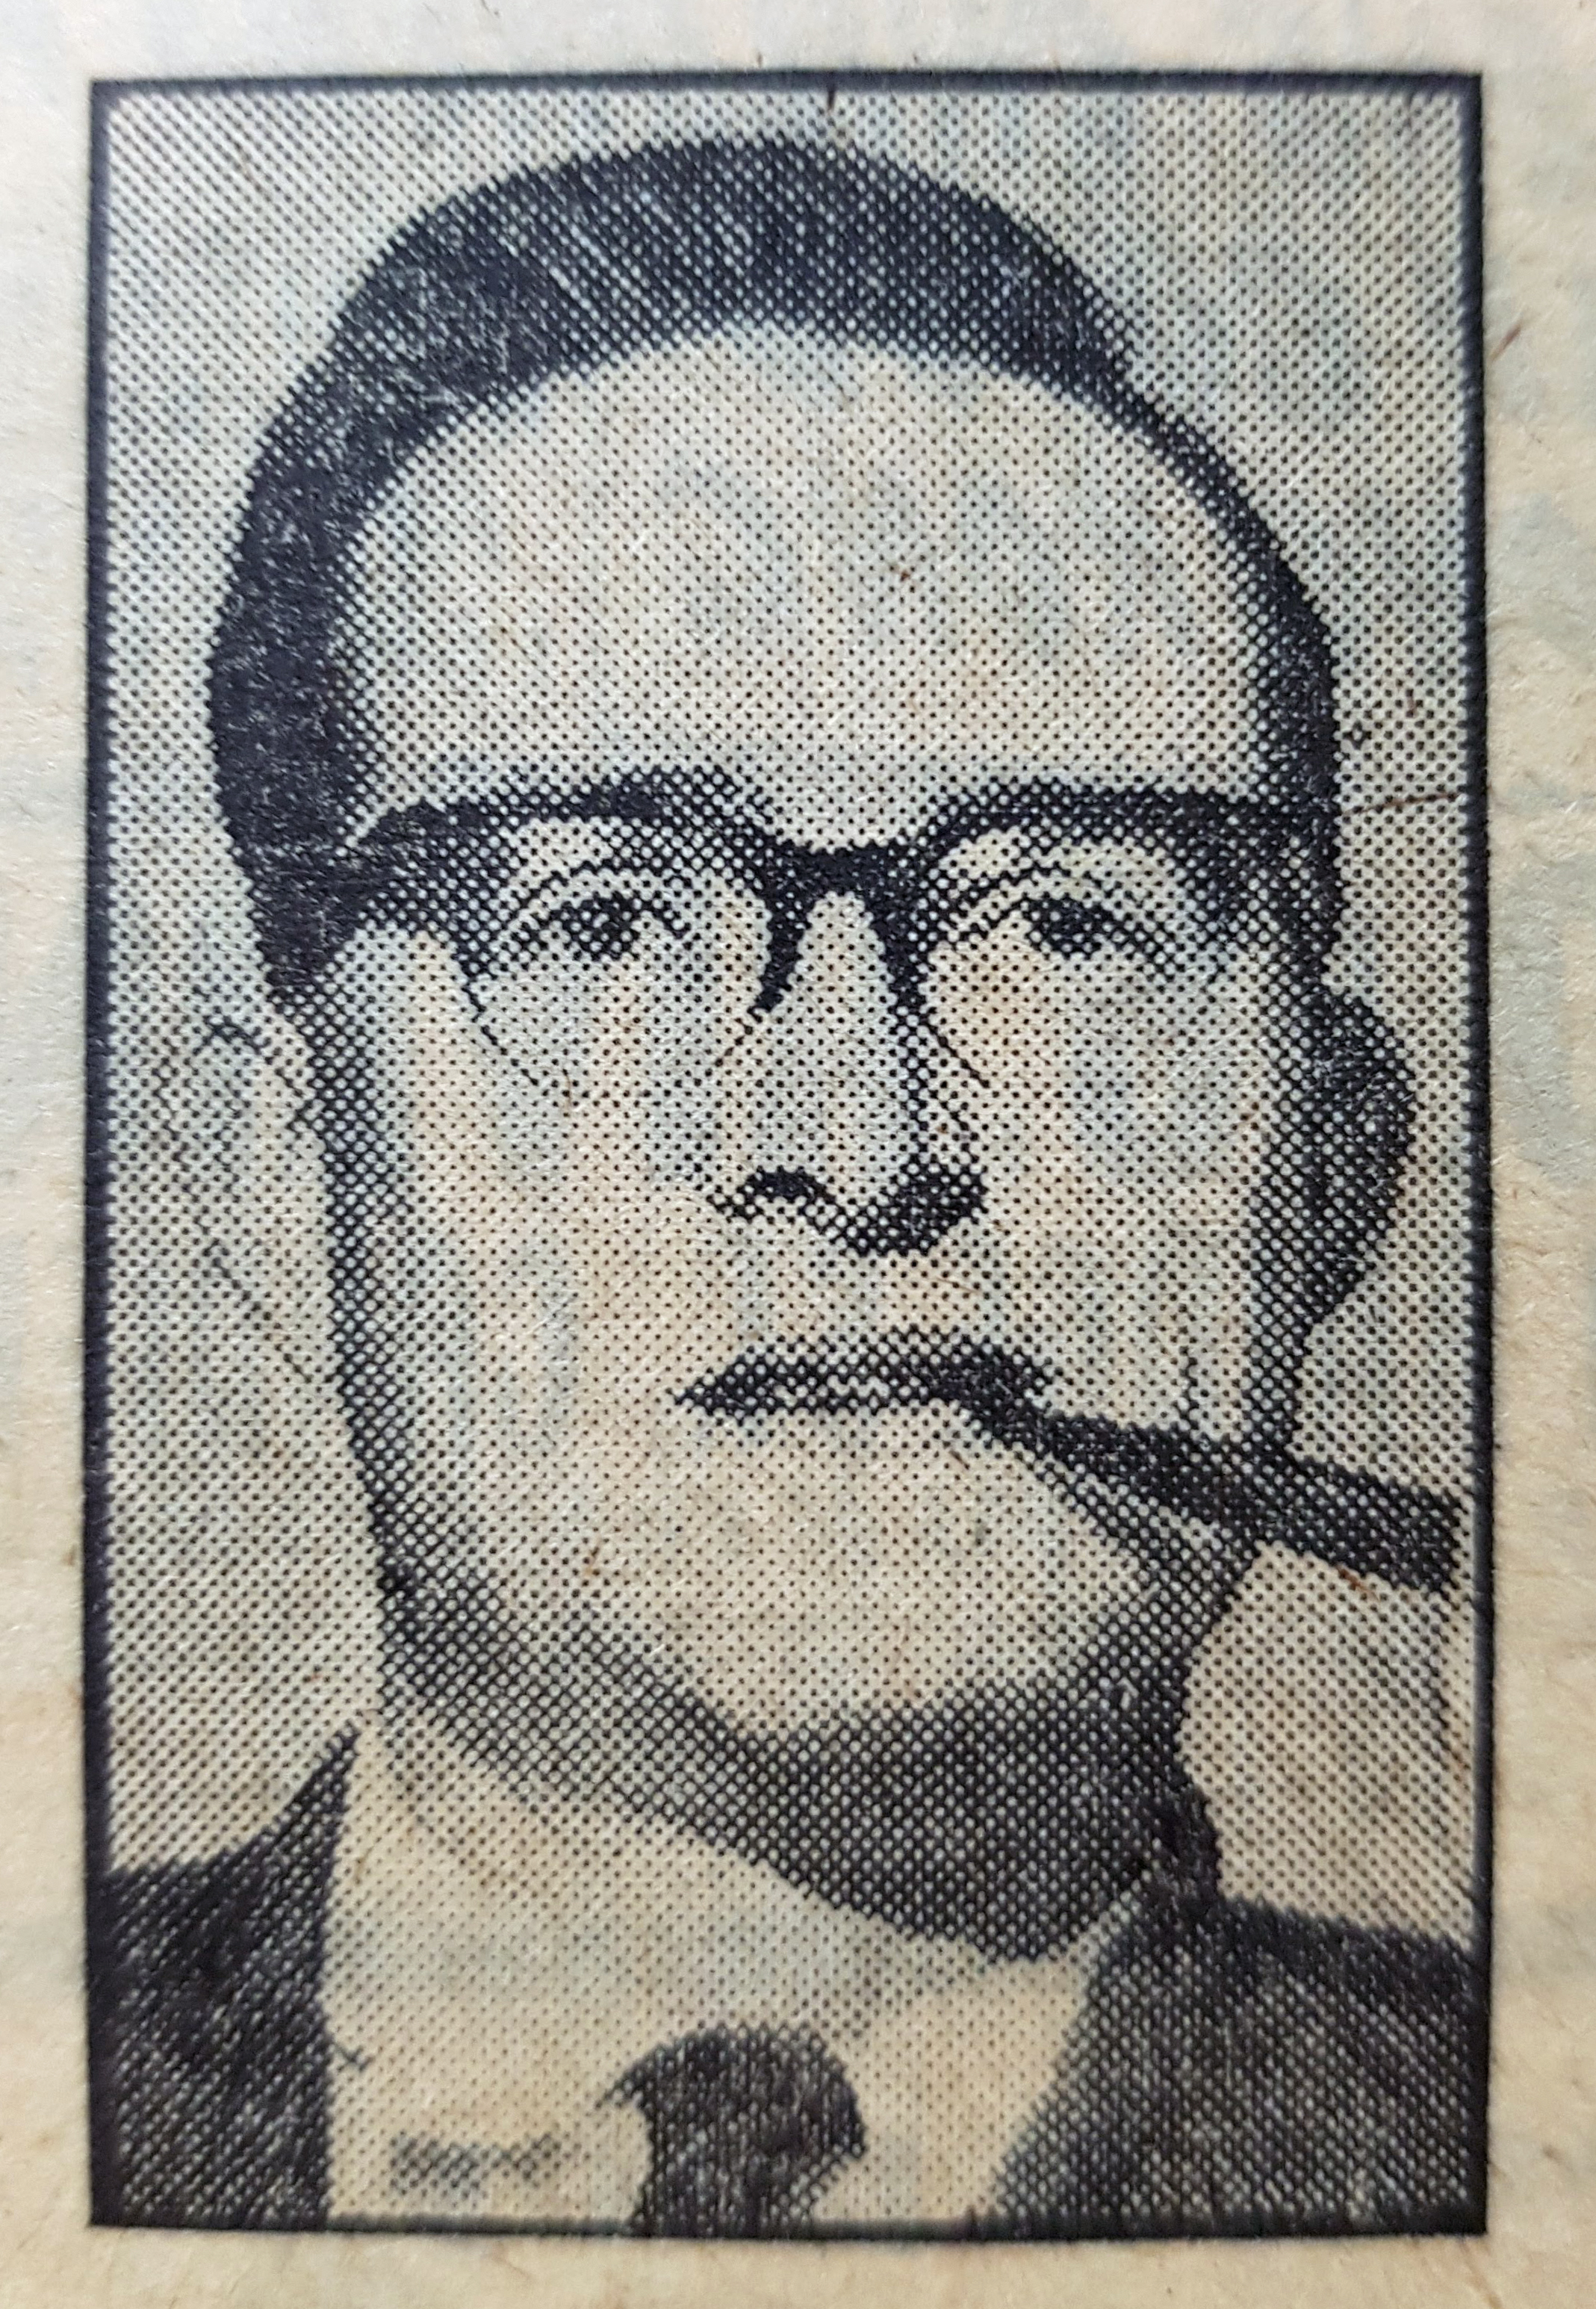 Tom Kilburn in the 1960s.